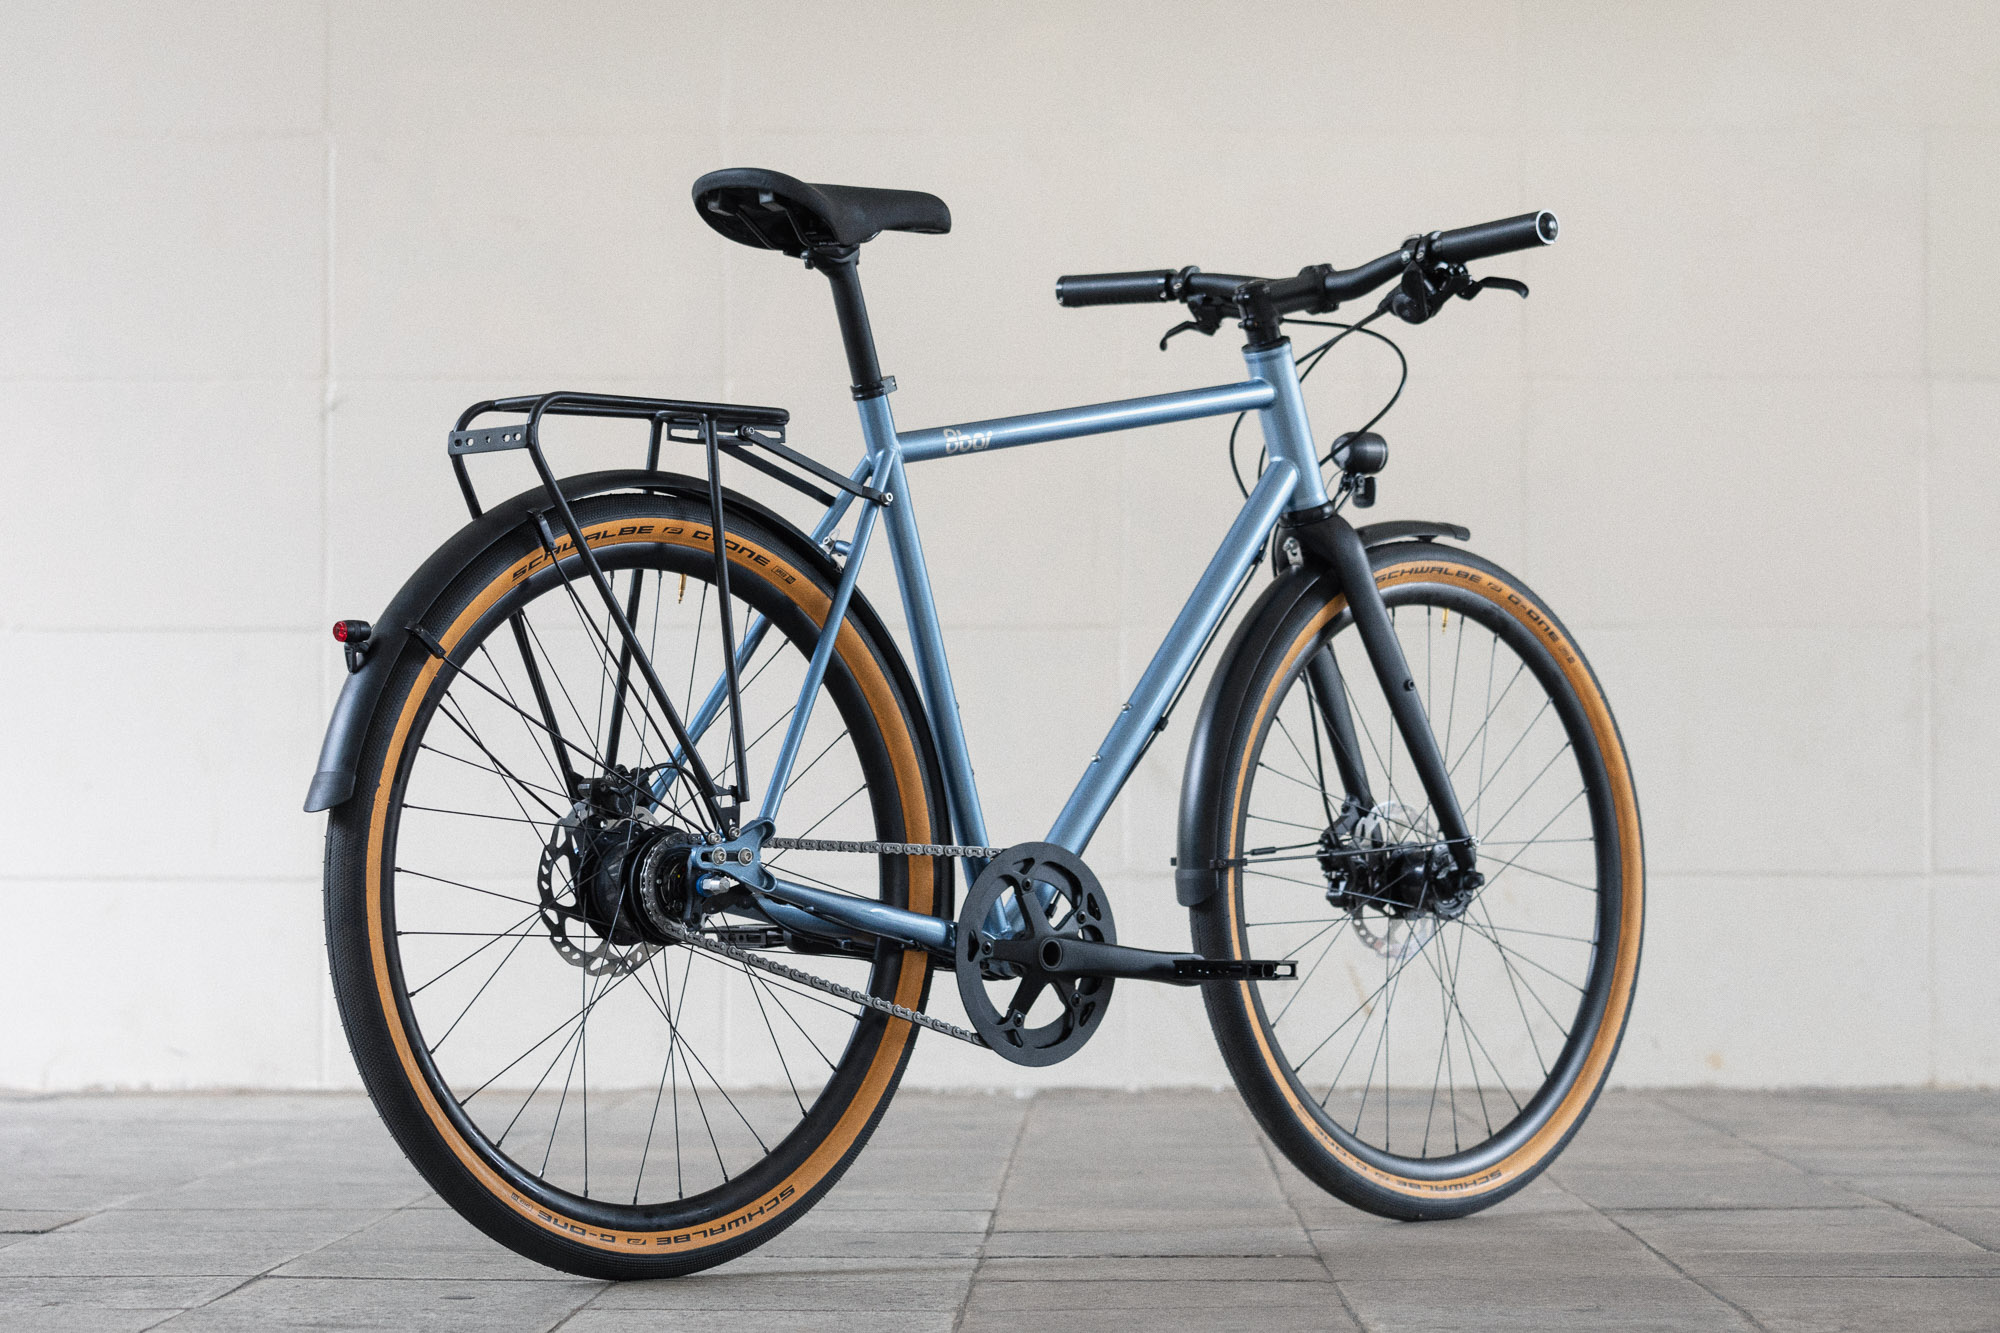 8bar-complete-bike-mitte-steel-blue-urban-lr-3